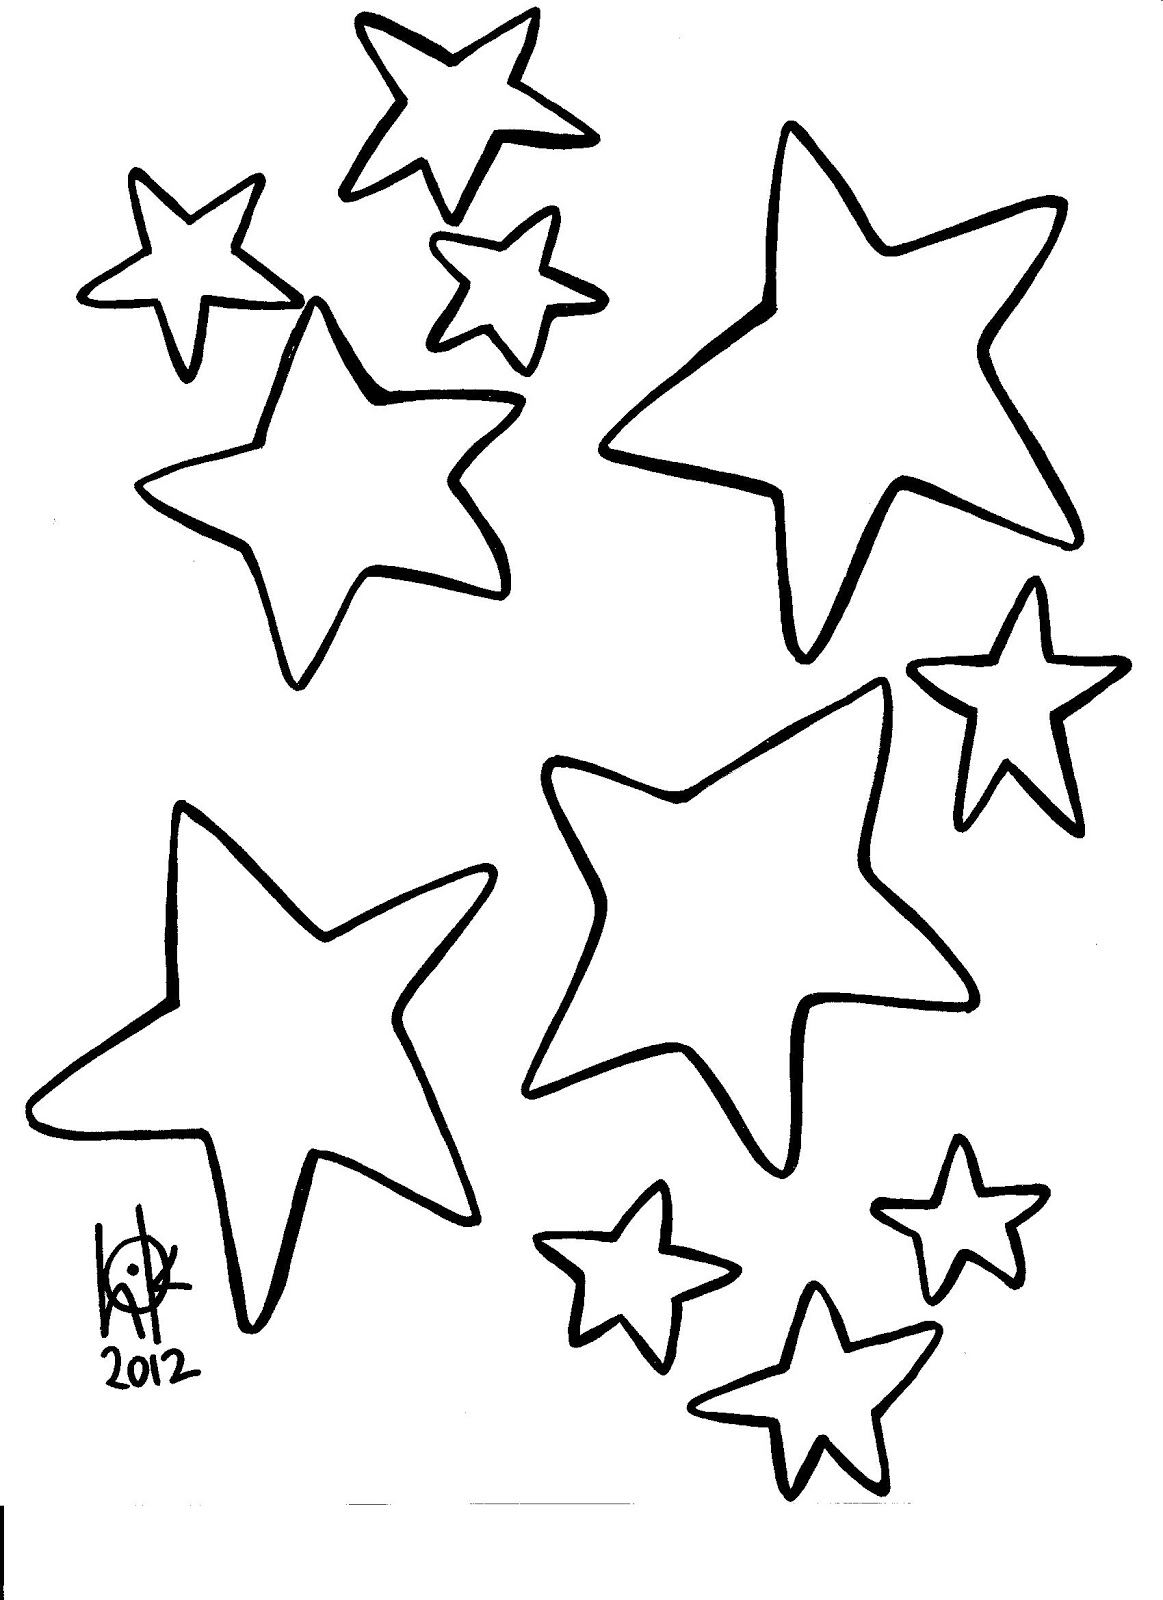 coloring pages of a star christmas star coloring pages at santalettercom of a coloring pages star